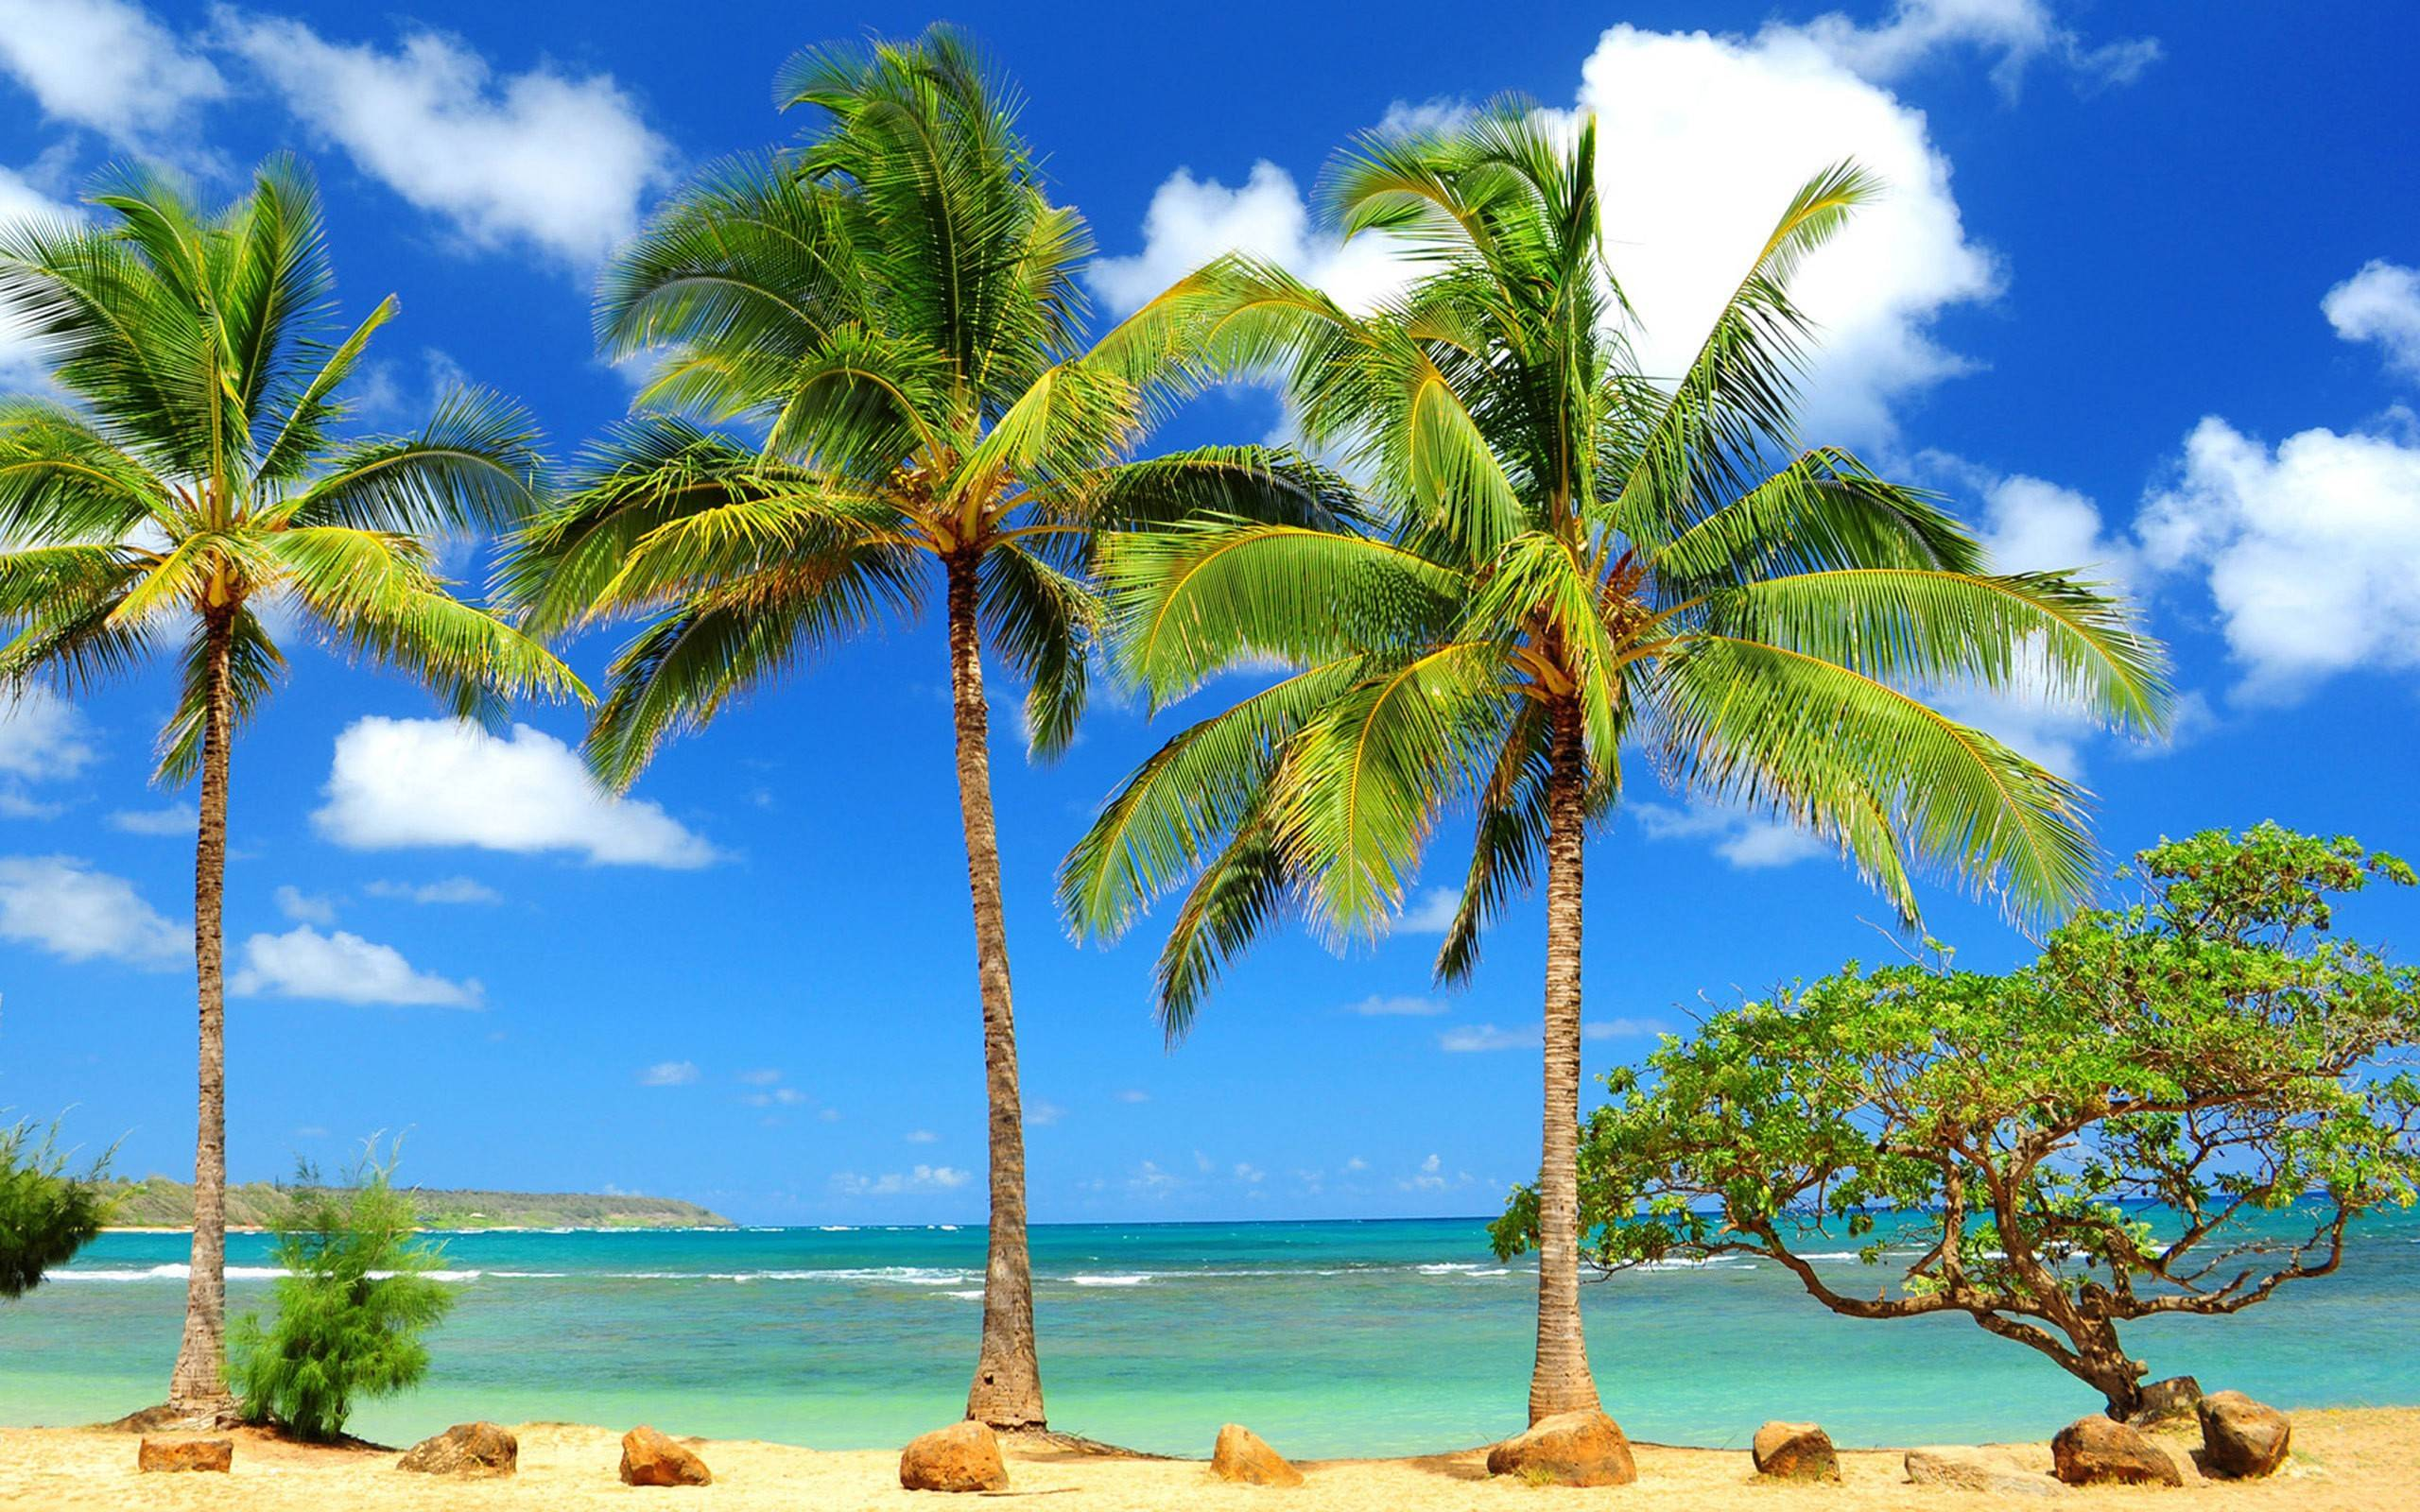 Beach Palm Tree Hd Wallpapers Free Download - Hawaii Beach Palm Trees - HD Wallpaper